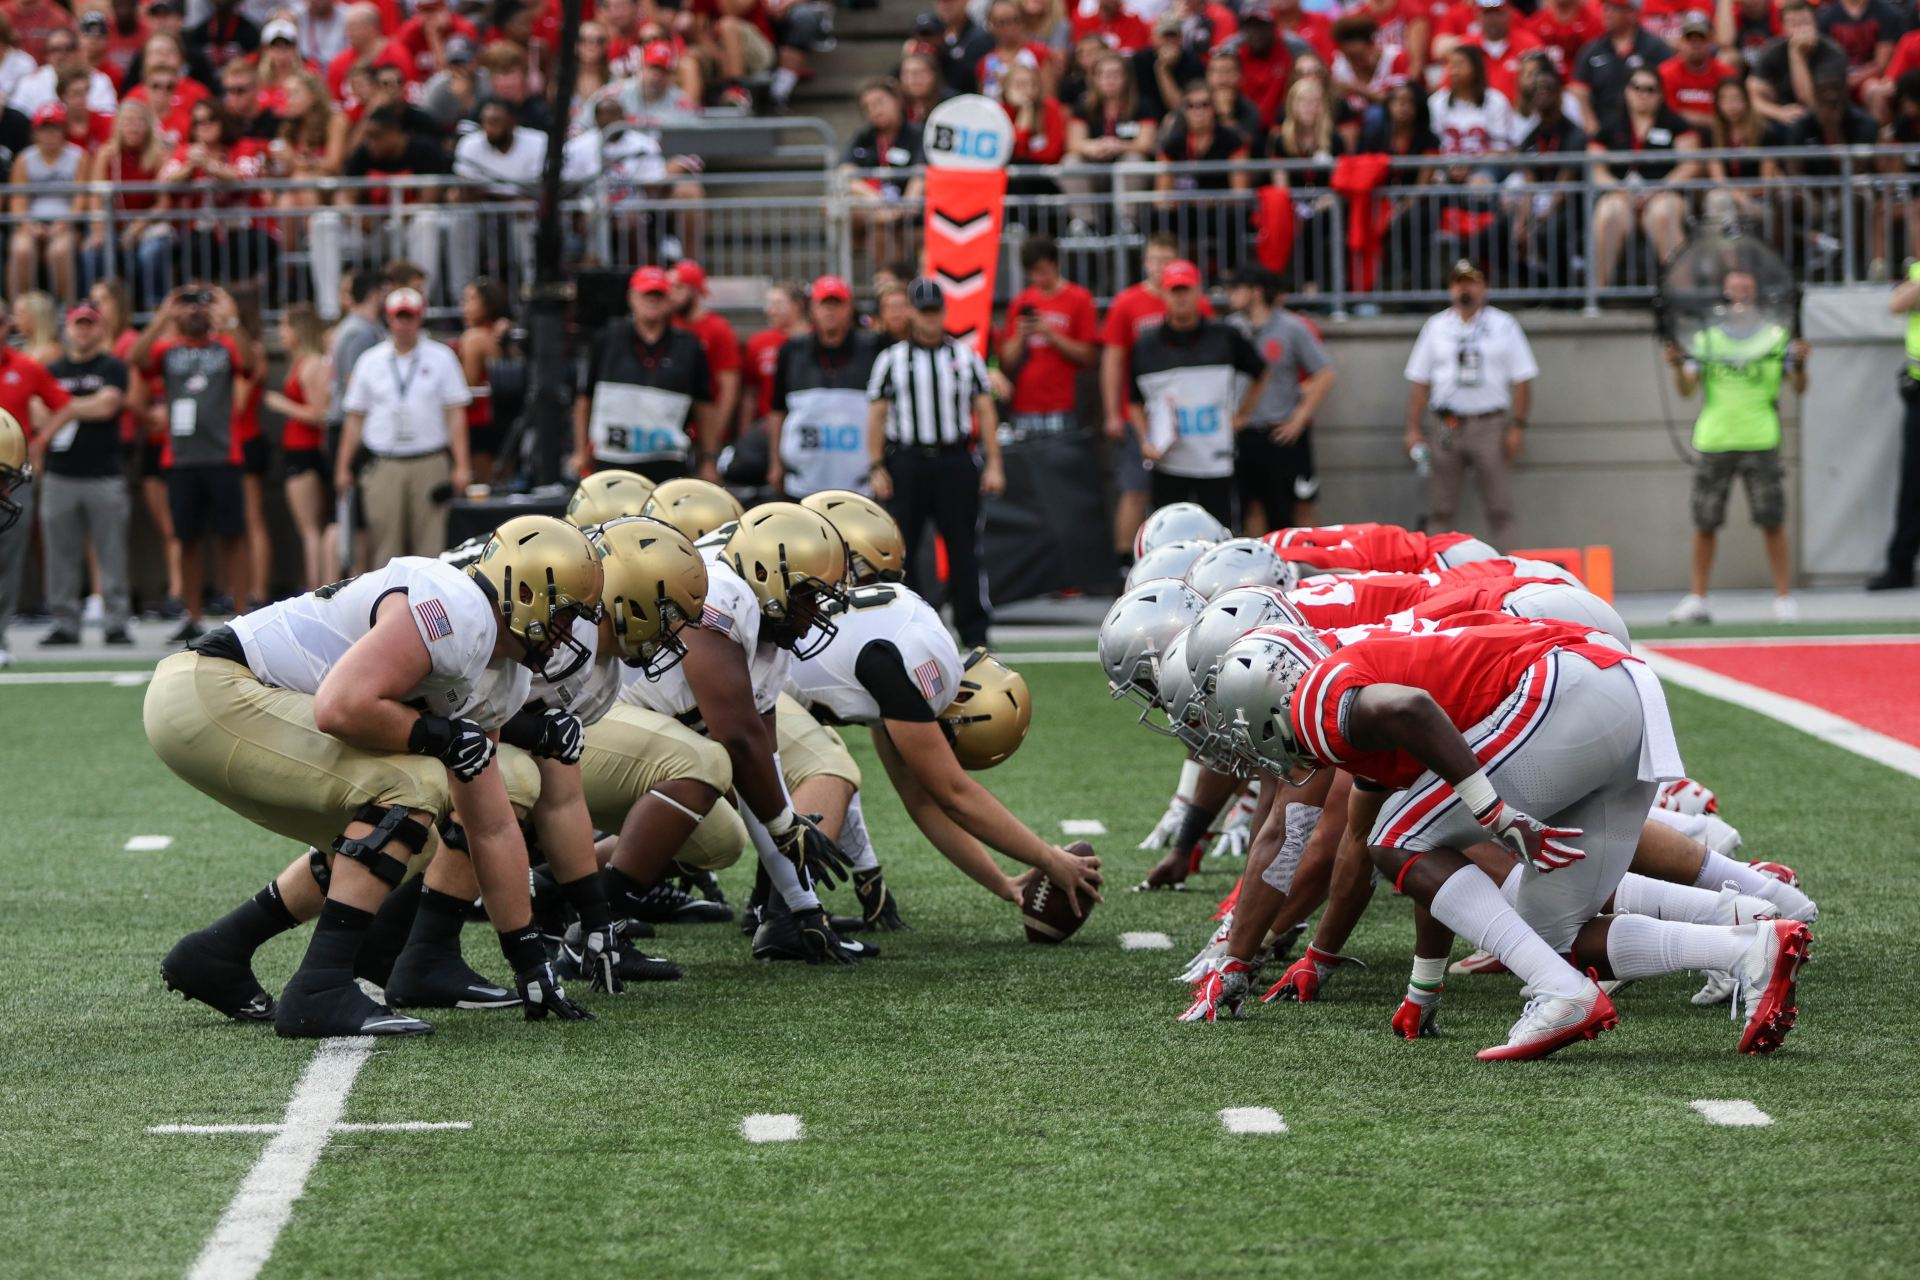 The Silver Bulletin: Highlights from Ohio State Football's 38-7 win over Army